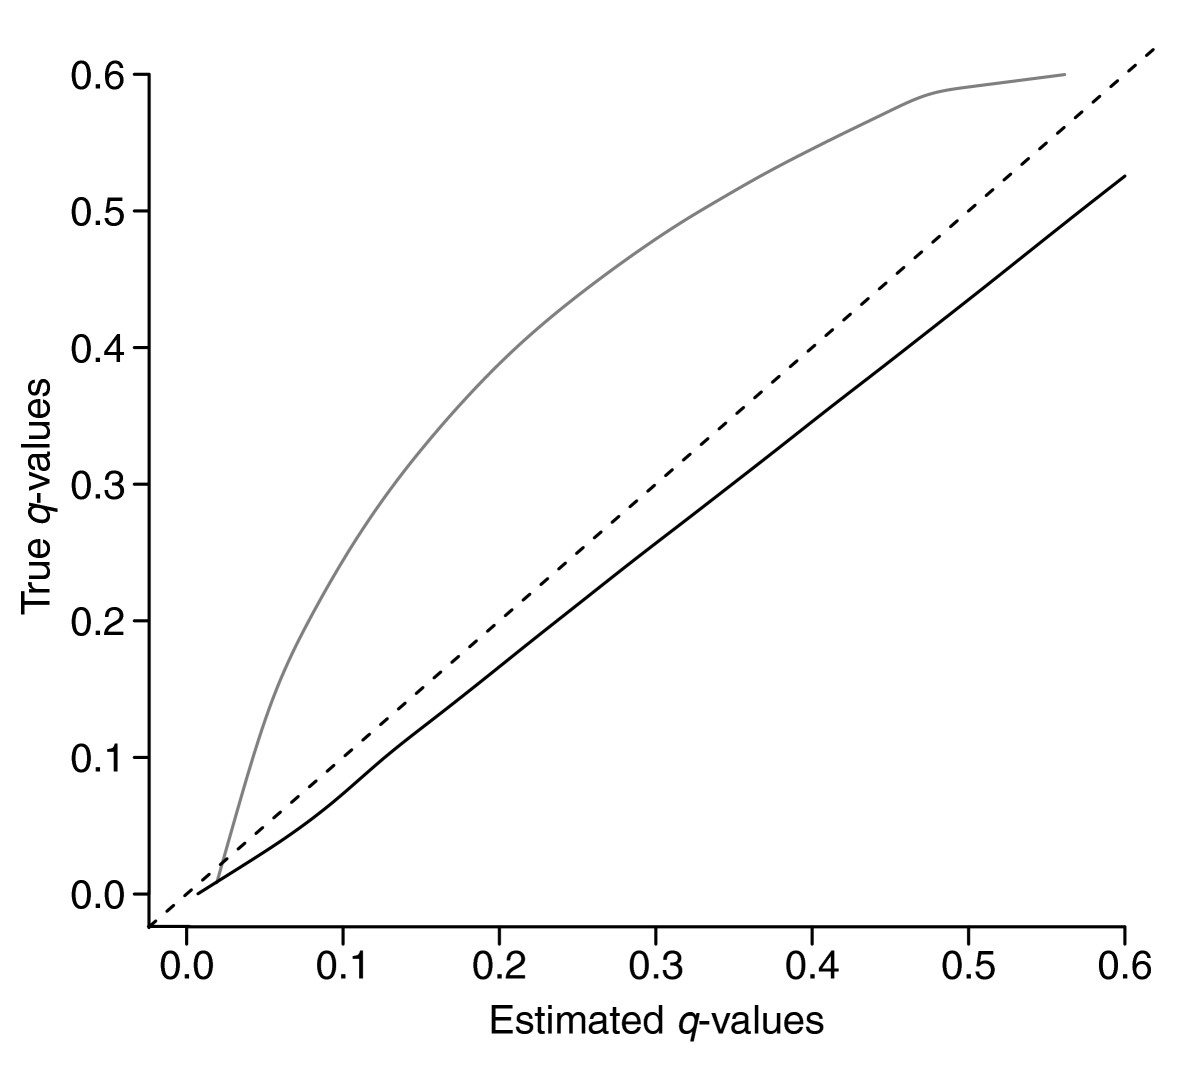 https://static-content.springer.com/image/art%3A10.1186%2Fgb-2006-7-3-401/MediaObjects/13059_2006_Article_1265_Fig4_HTML.jpg